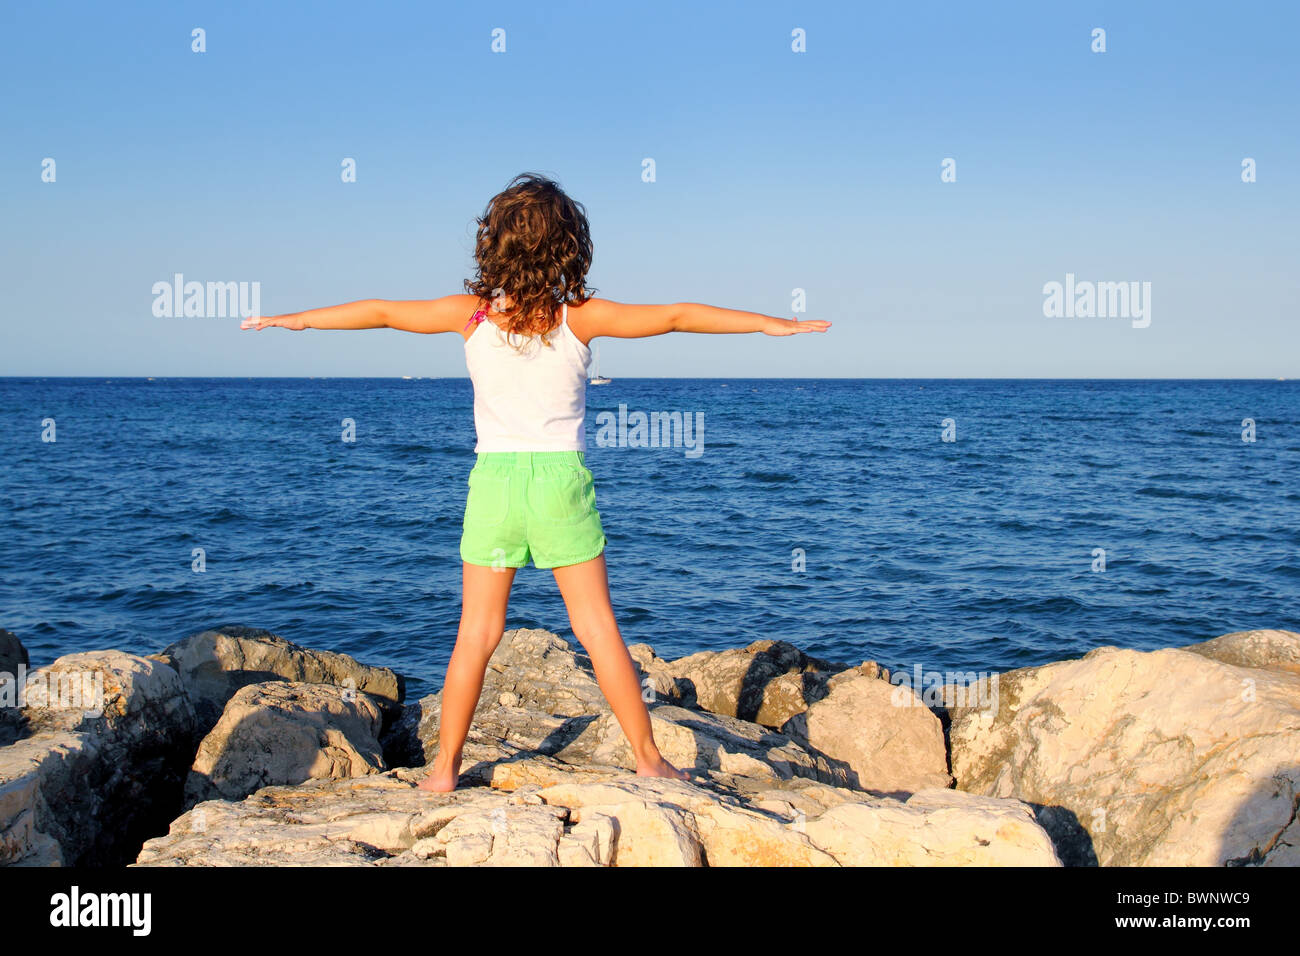 open arms girl looking blue ocean sea feeling freedom in vacation - Stock Image